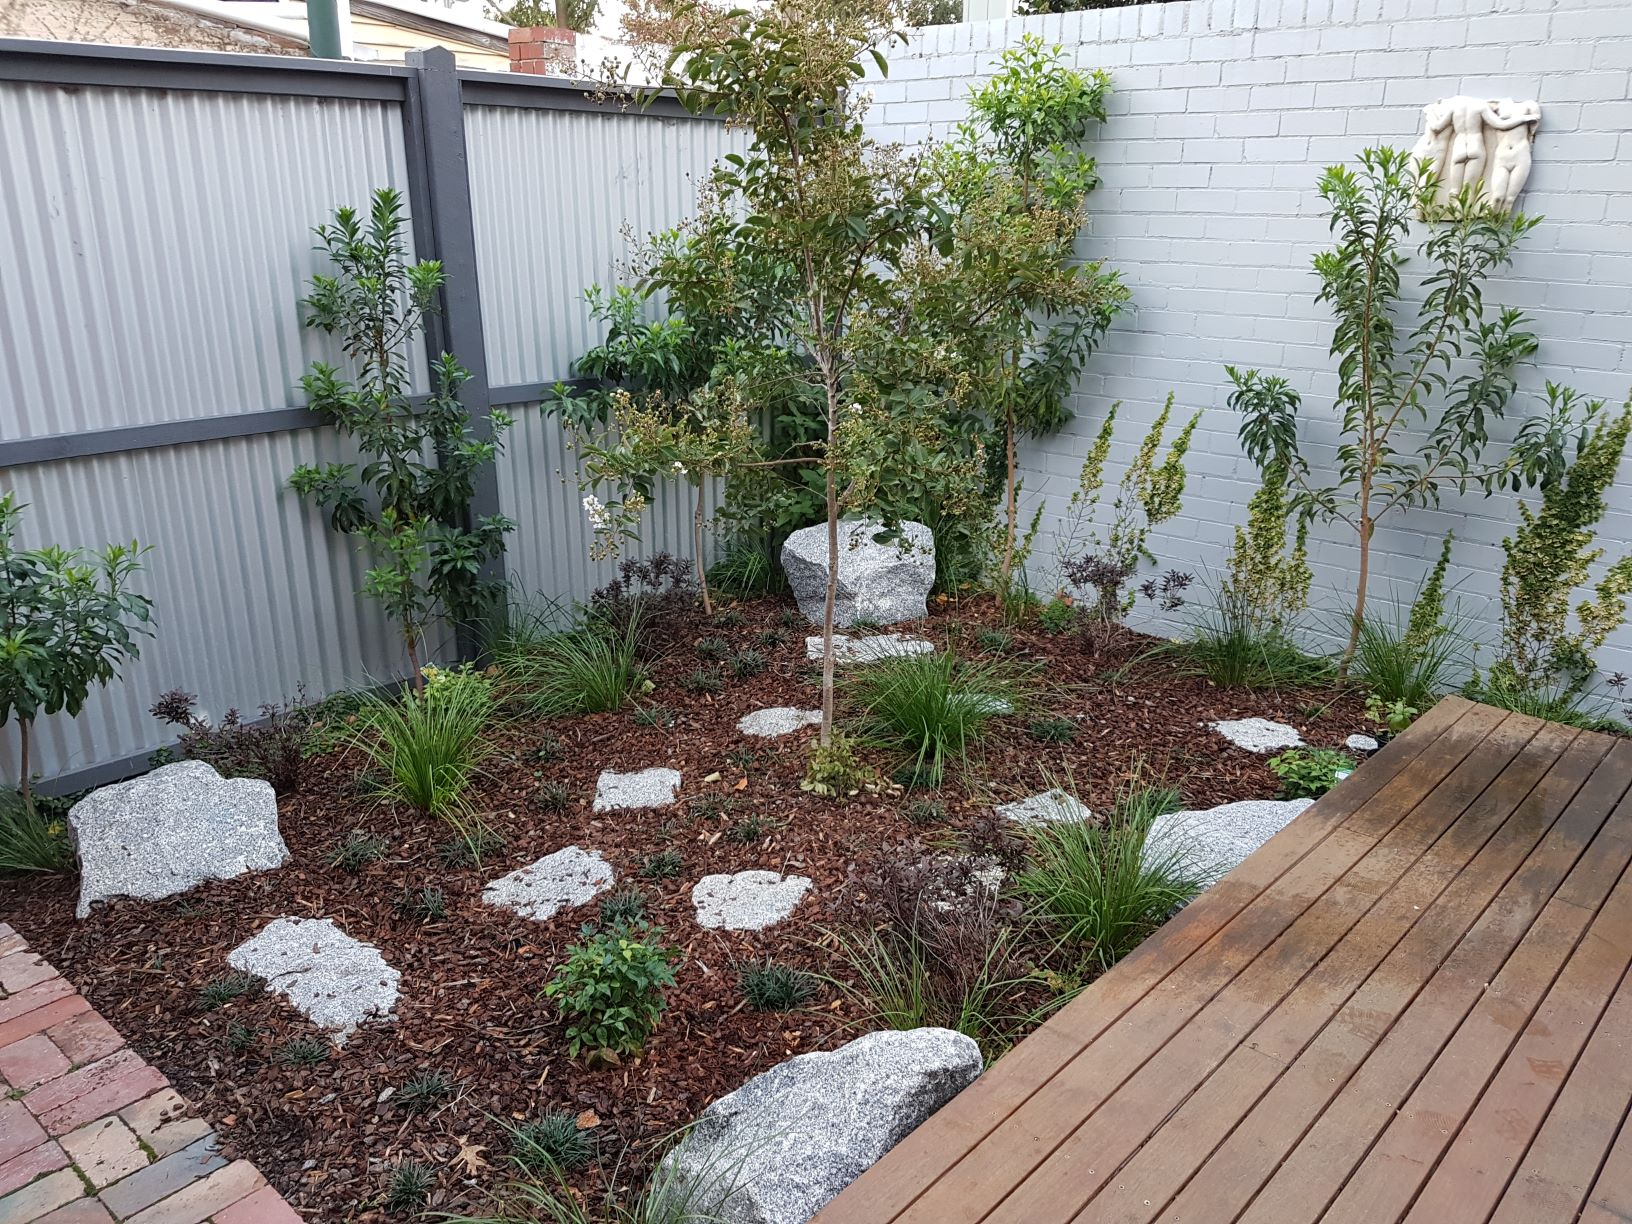 Granitic stone, Granitic stone stepping pavers, Asian style garden, Carlton Nth garden, Rocks for add interest